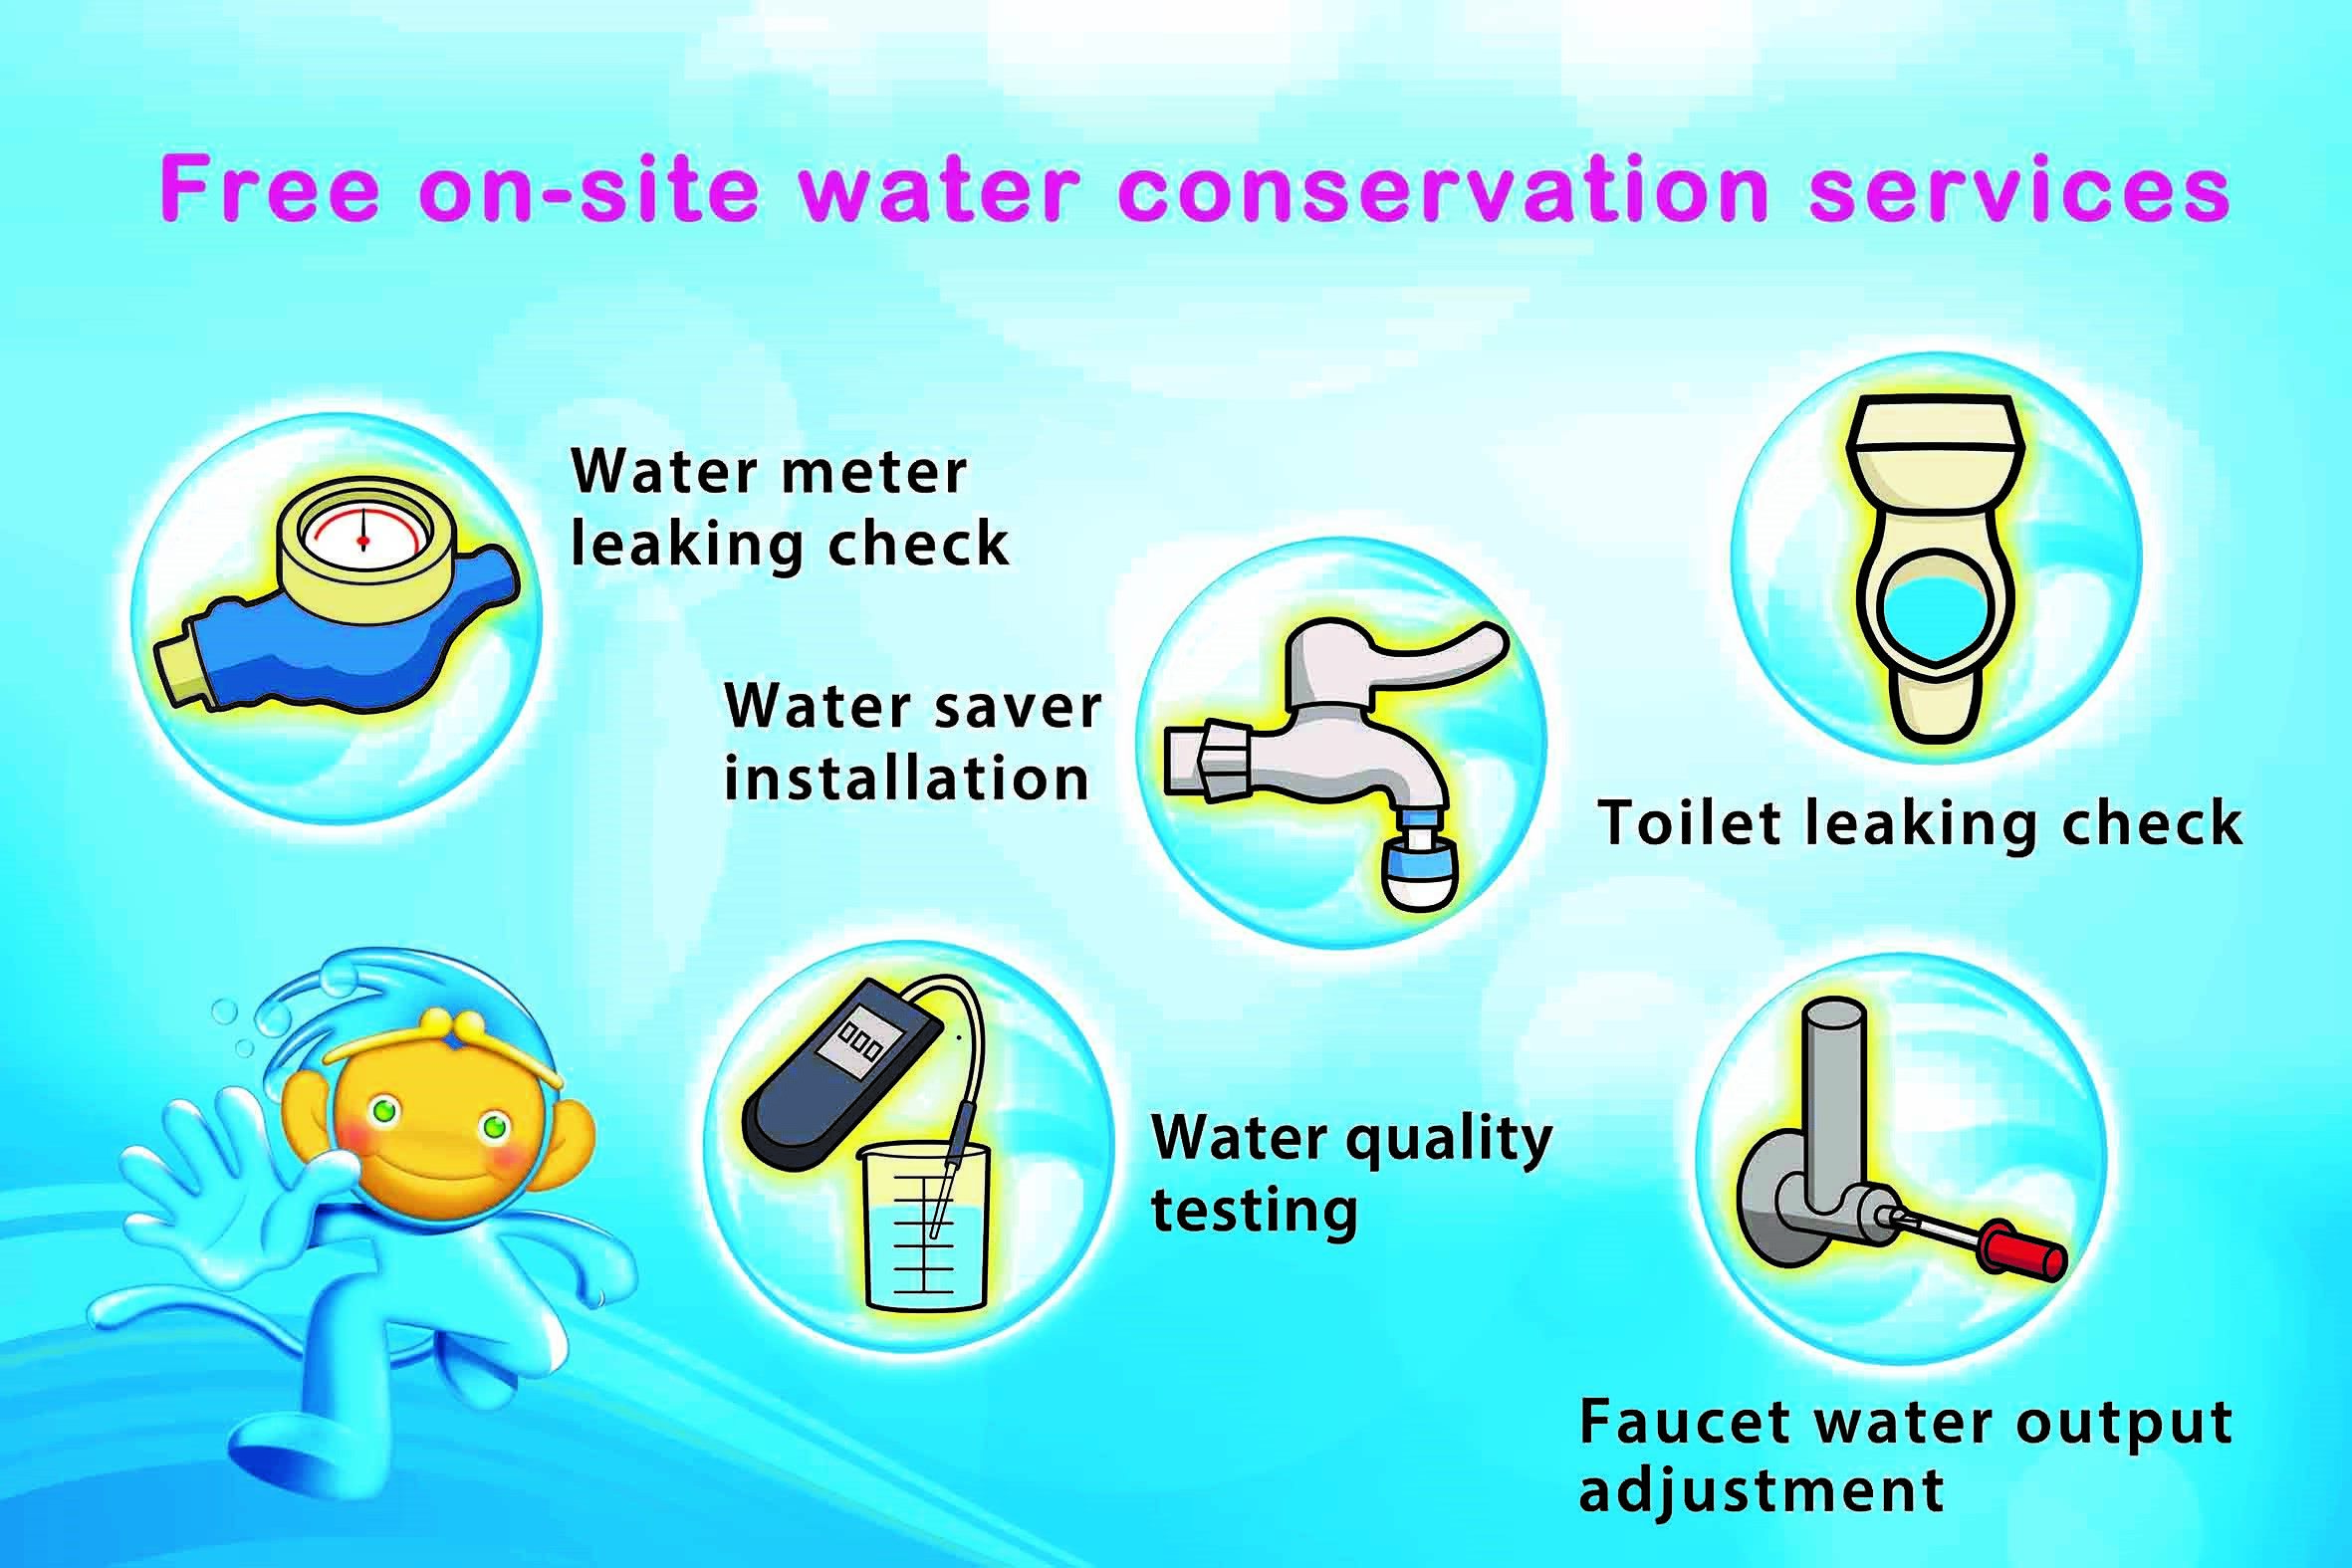 free on-site water conservation services